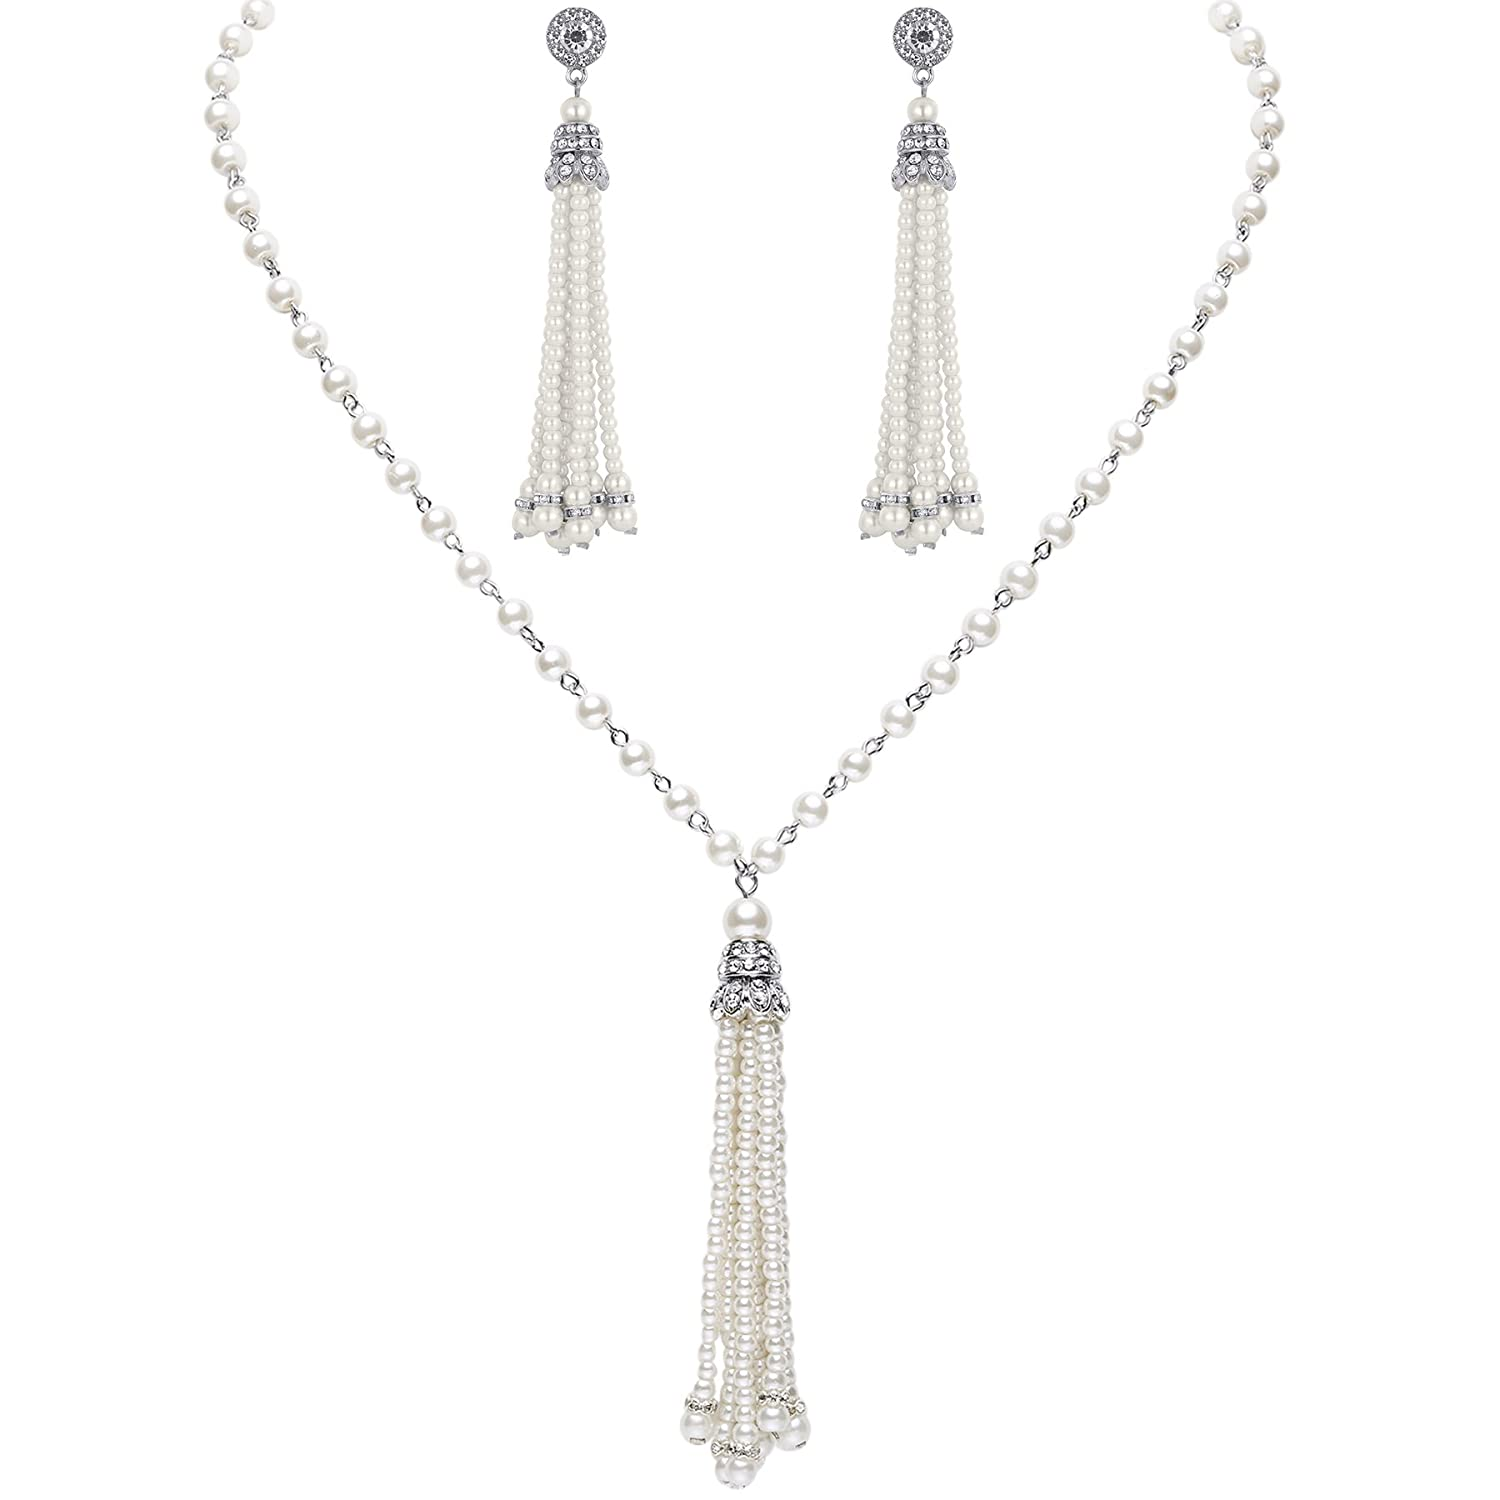 1920s Gatsby Jewelry- Flapper Earrings, Necklaces, Bracelets BABEYOND 1920s Bridal Pearl Tassel Necklace Earrings Set 20s Vintage Wedding Jewelry Set Gatsby Imitation Pearl Necklace Pearl Tassel Earrings Set $17.99 AT vintagedancer.com